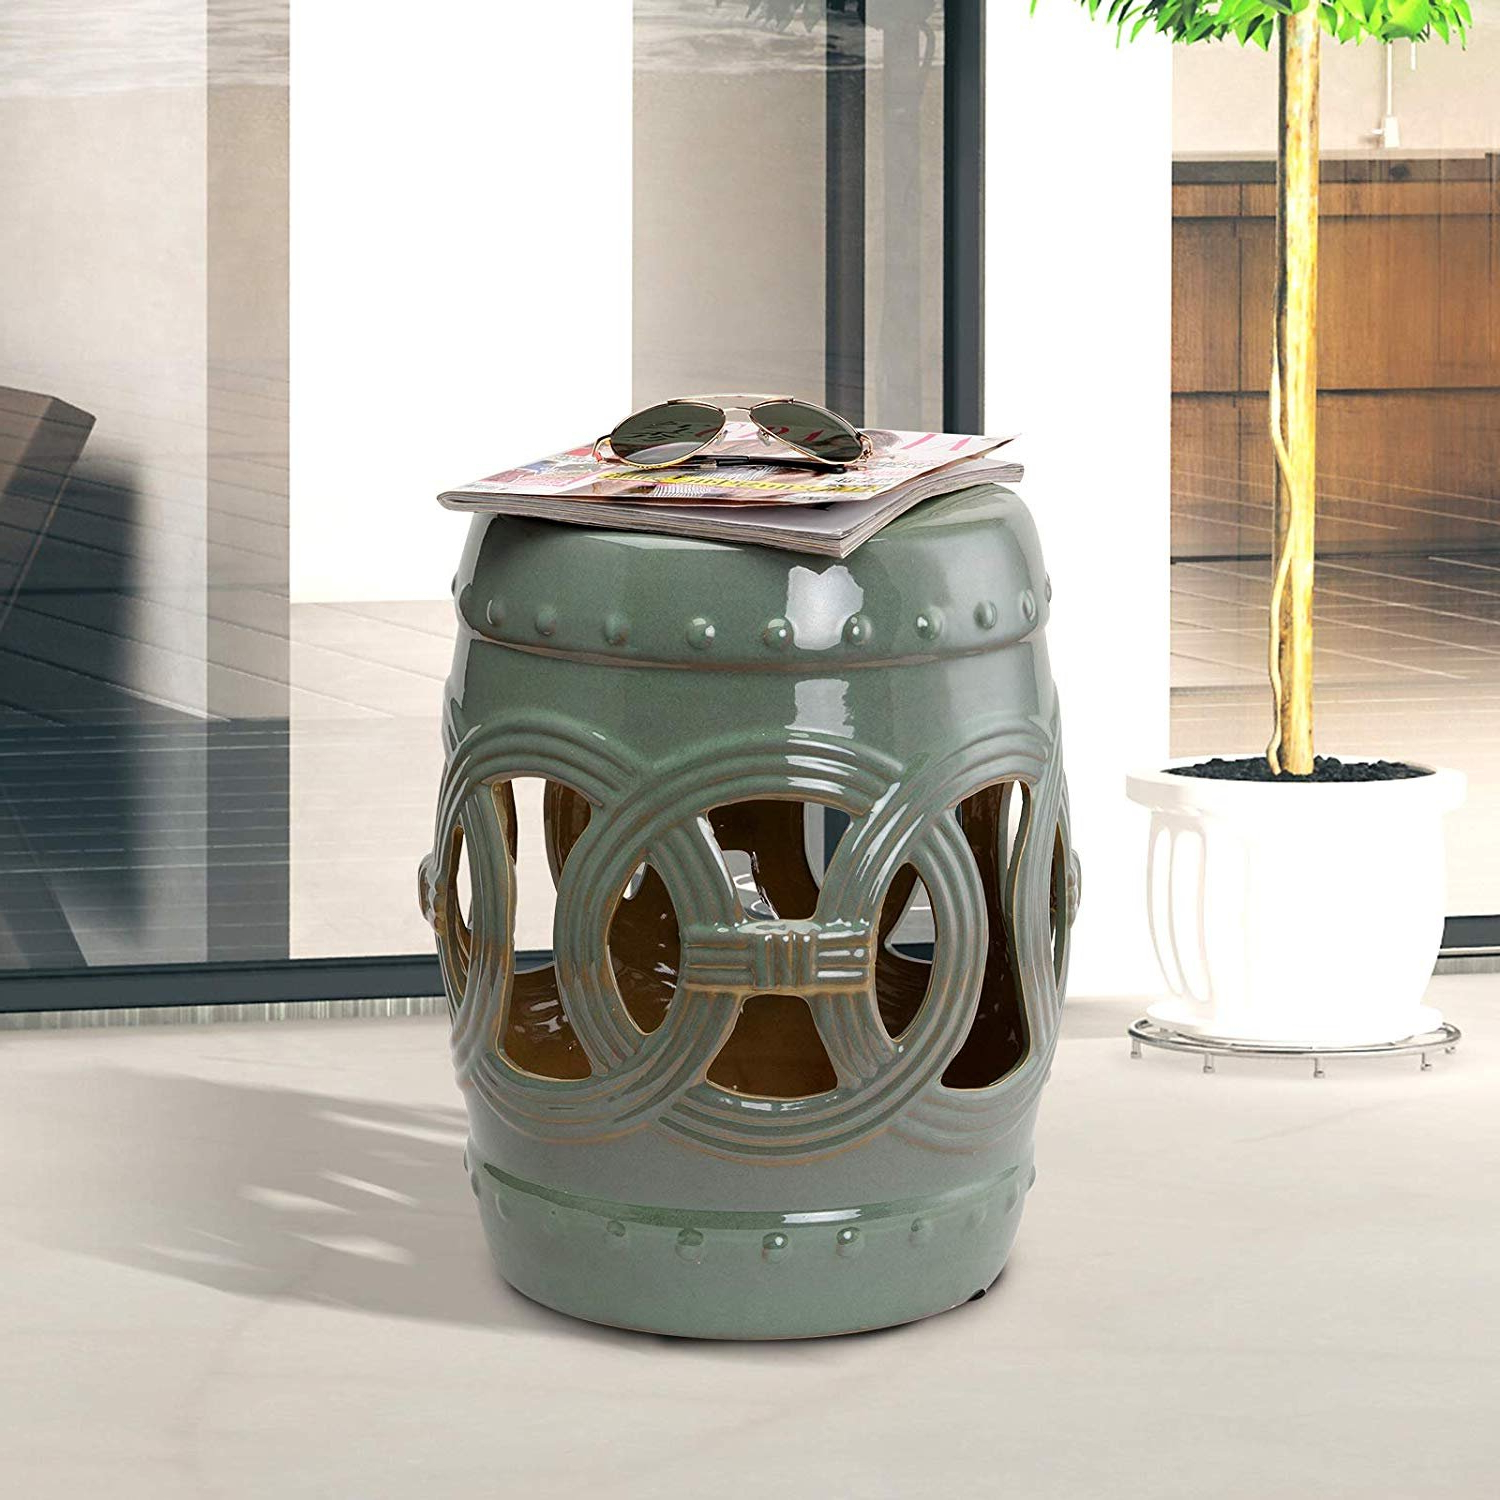 Wurster Ceramic Drip Garden Stools For Popular Blue & Green Garden Stools You'll Love In (View 13 of 30)